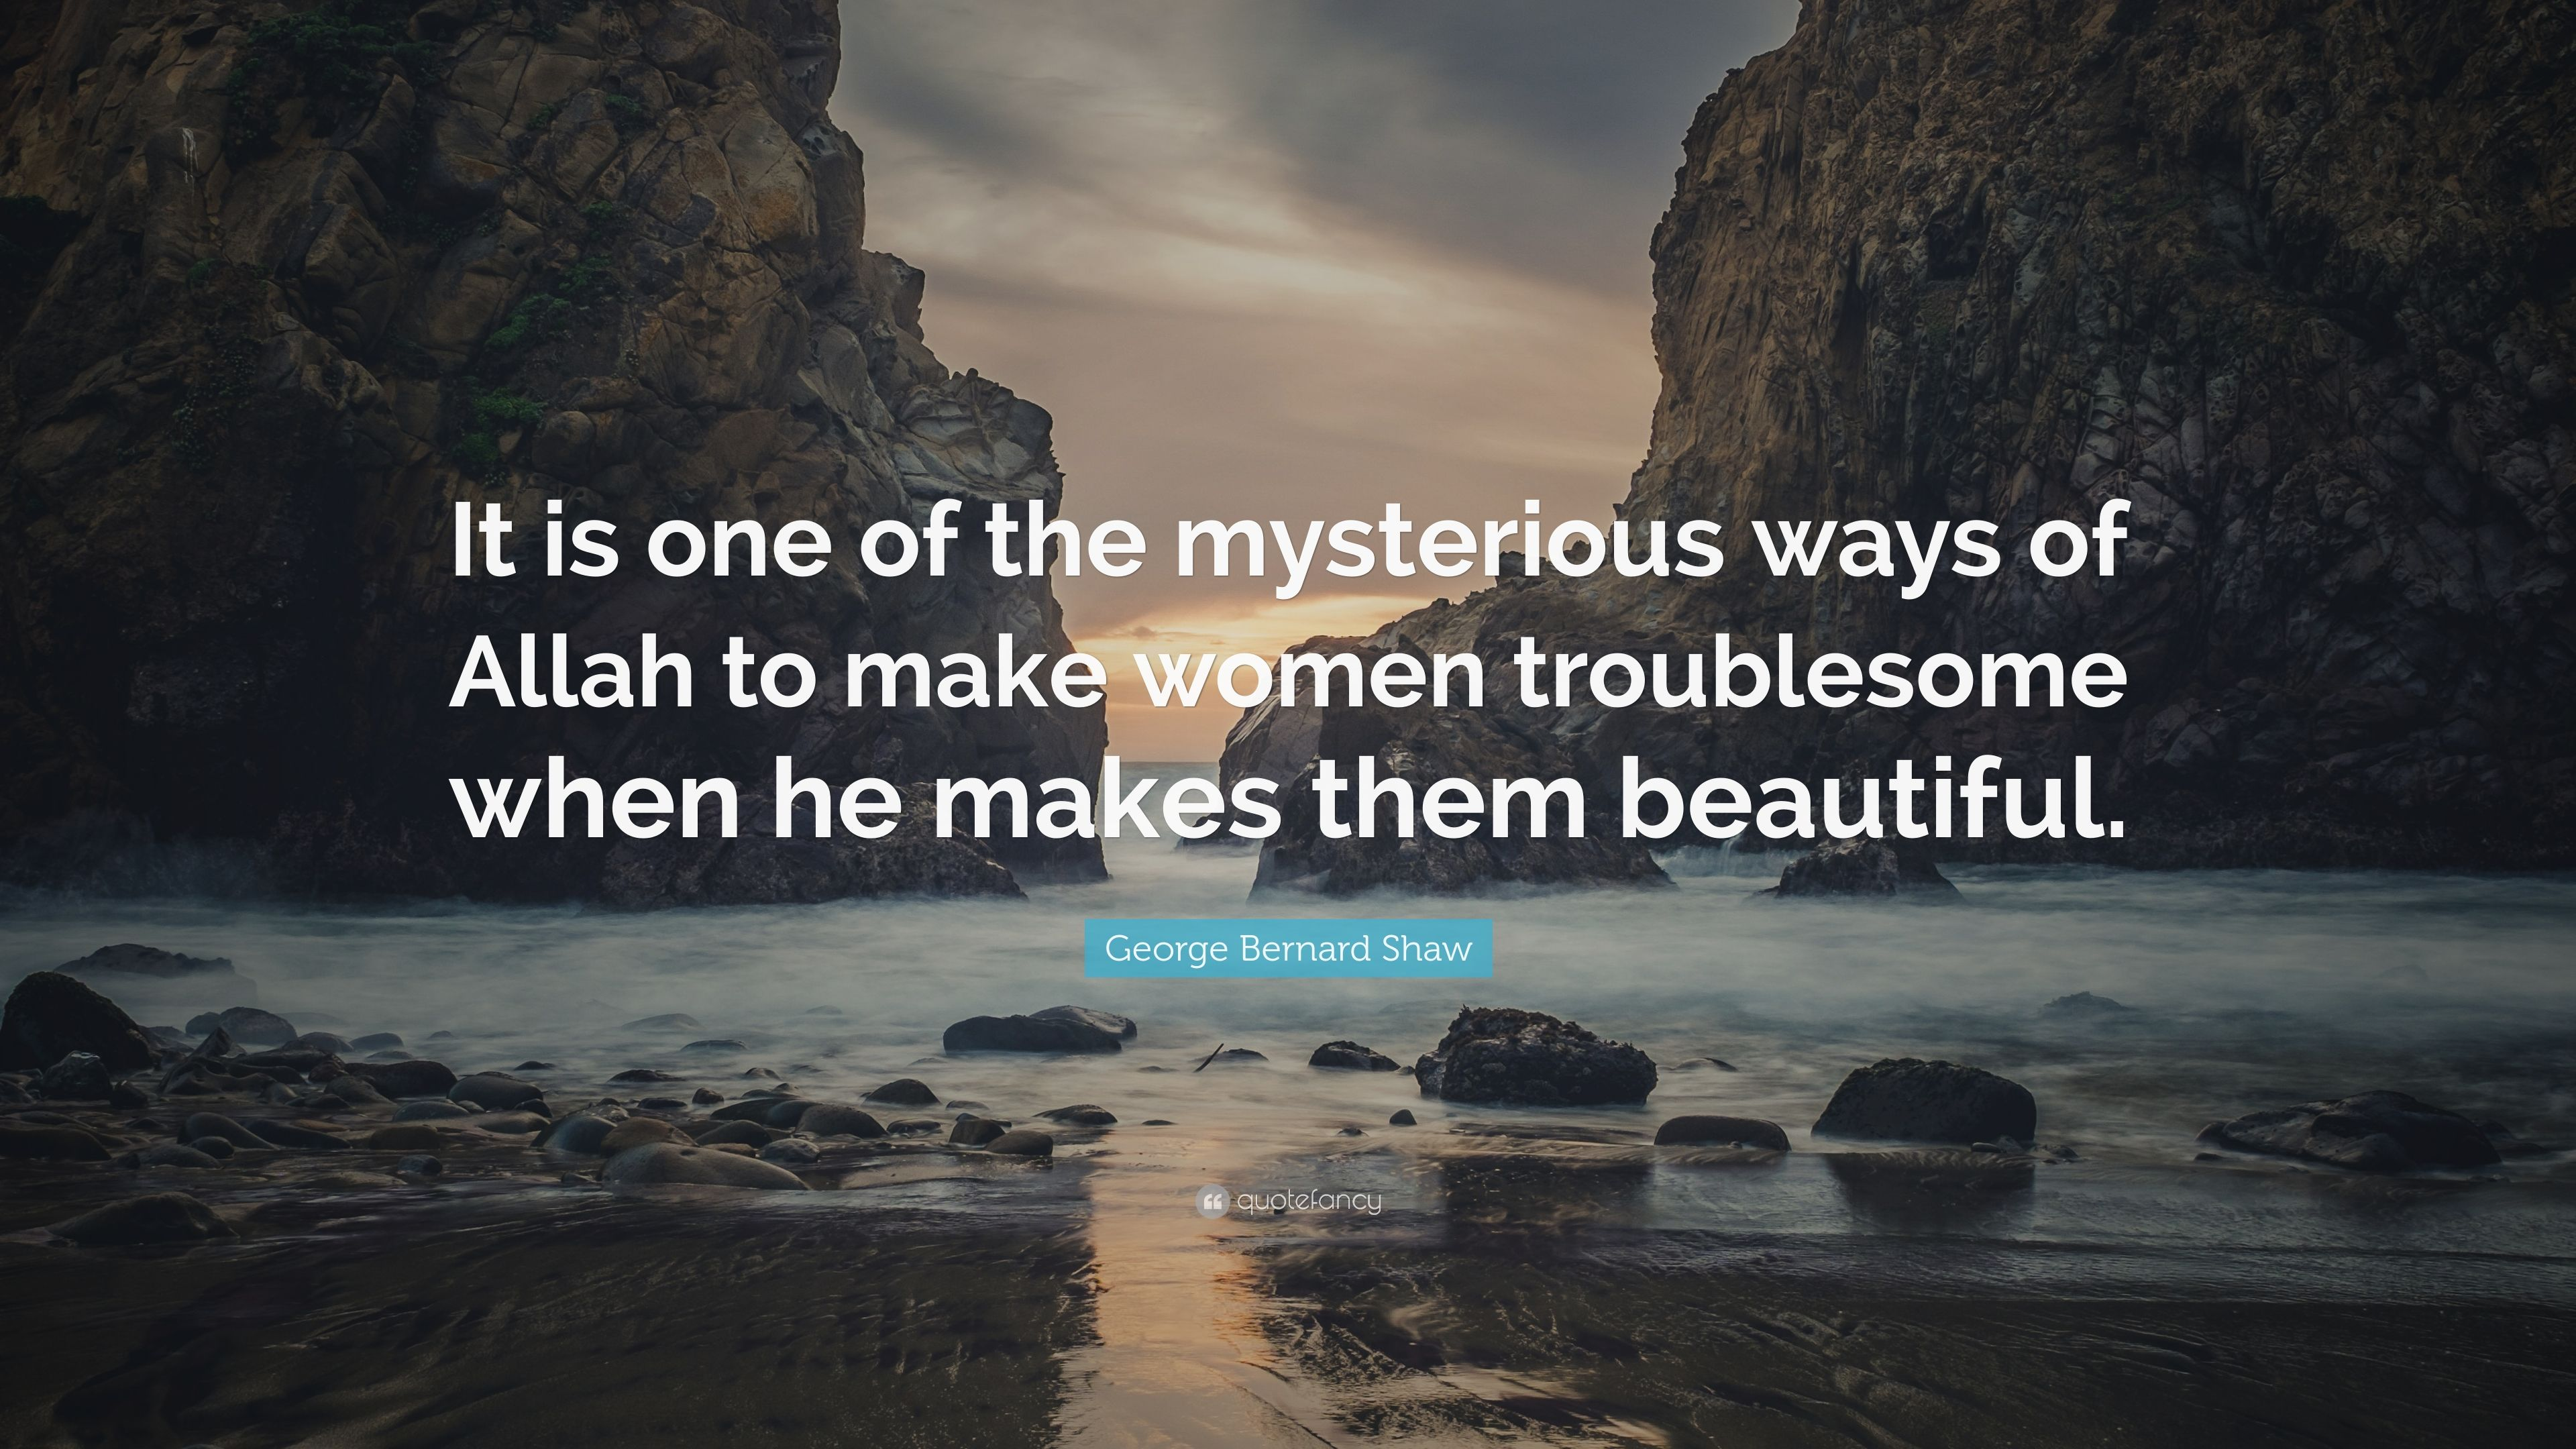 what makes a woman mysterious